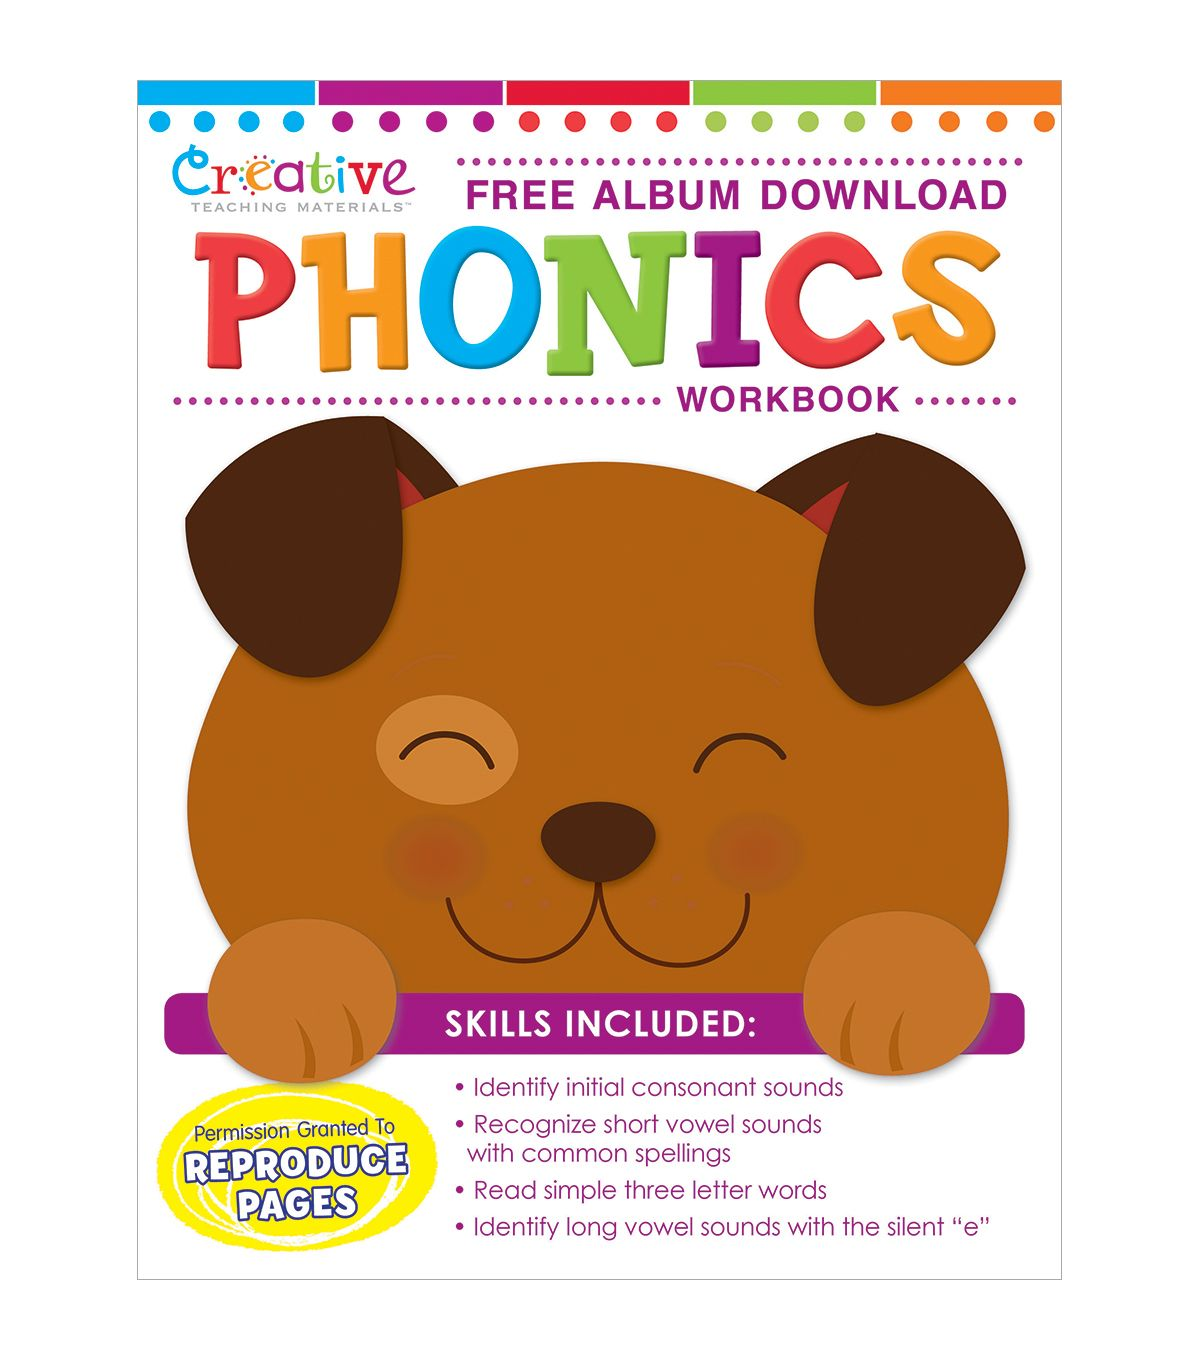 Workbooks jolly phonics workbook 1 free download : Creative Teaching Materials Workbook - Phonics | Creative teaching ...